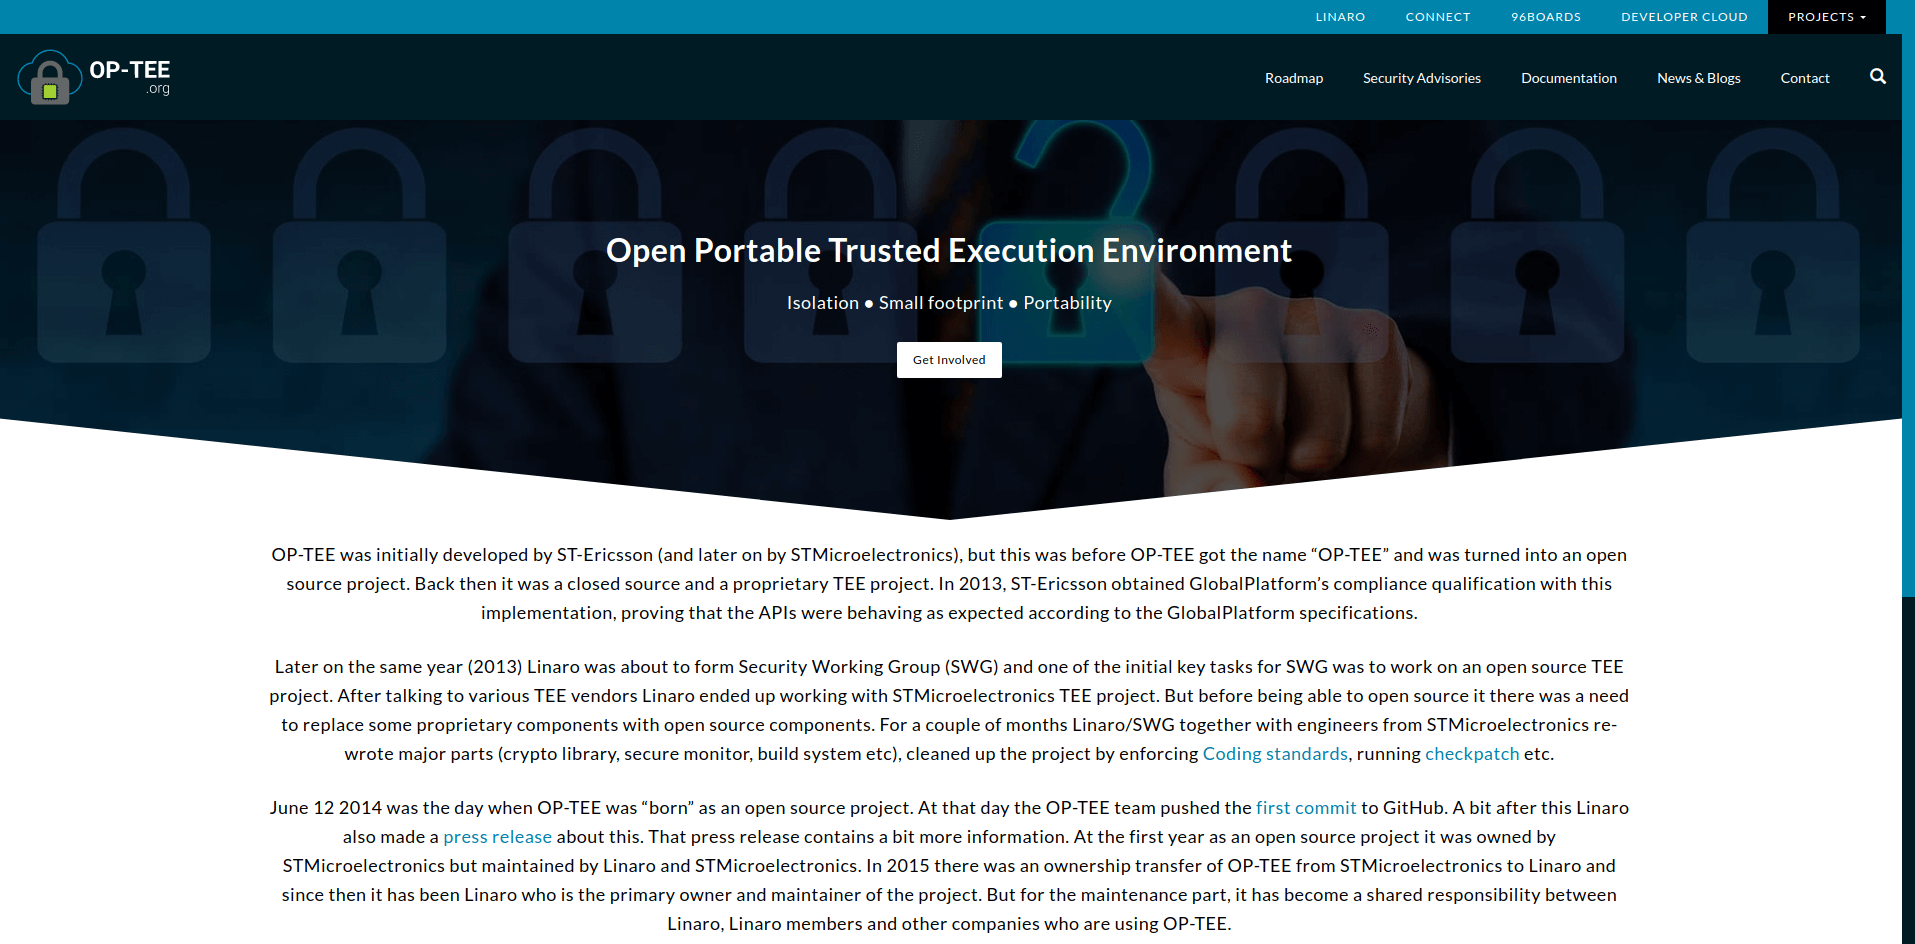 Open Portable Trusted Execution Environment - OP-TEE